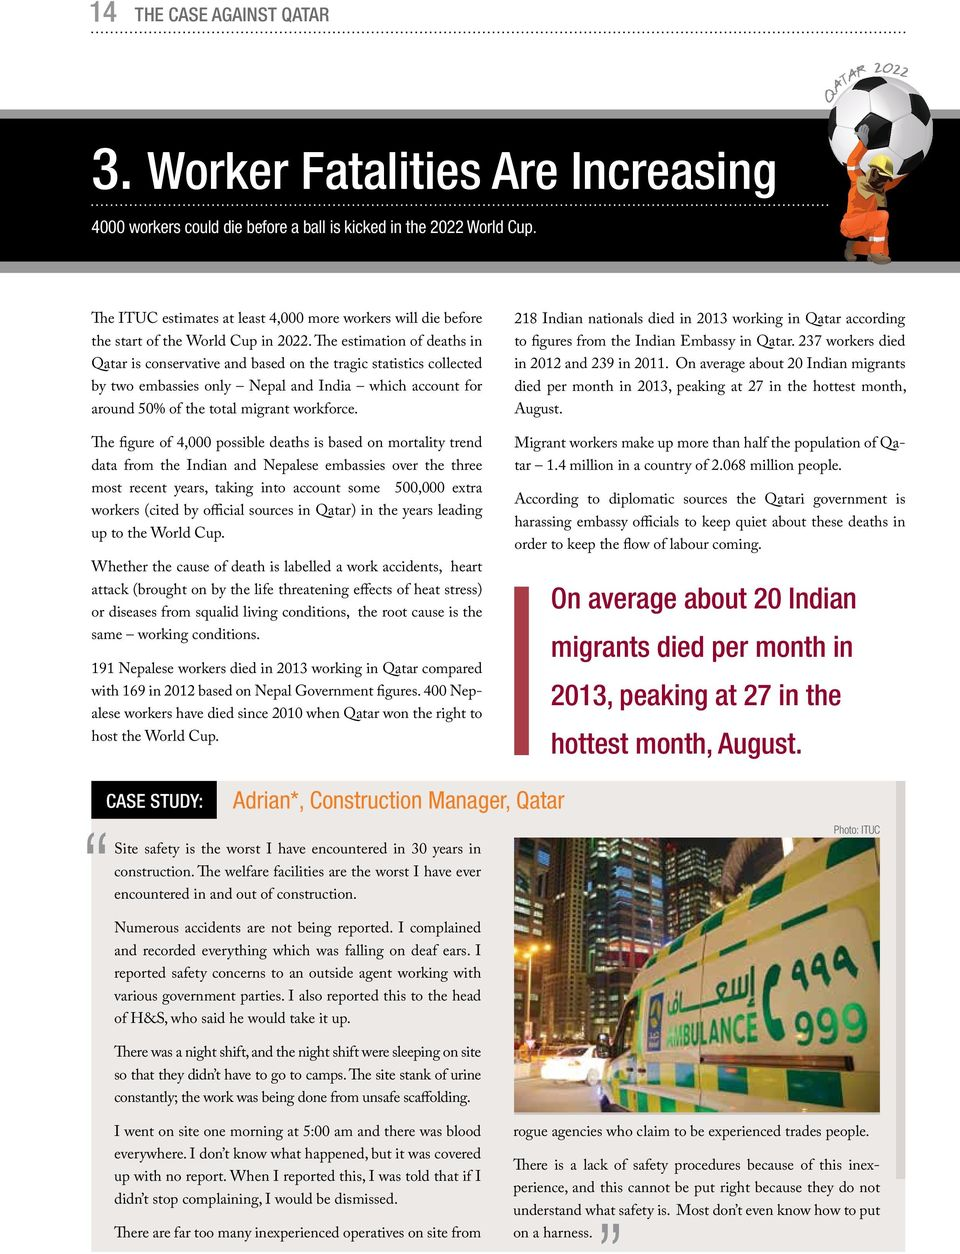 The estimation of deaths in Qatar is conservative and based on the tragic statistics collected by two embassies only Nepal and India which account for around 50% of the total migrant workforce.